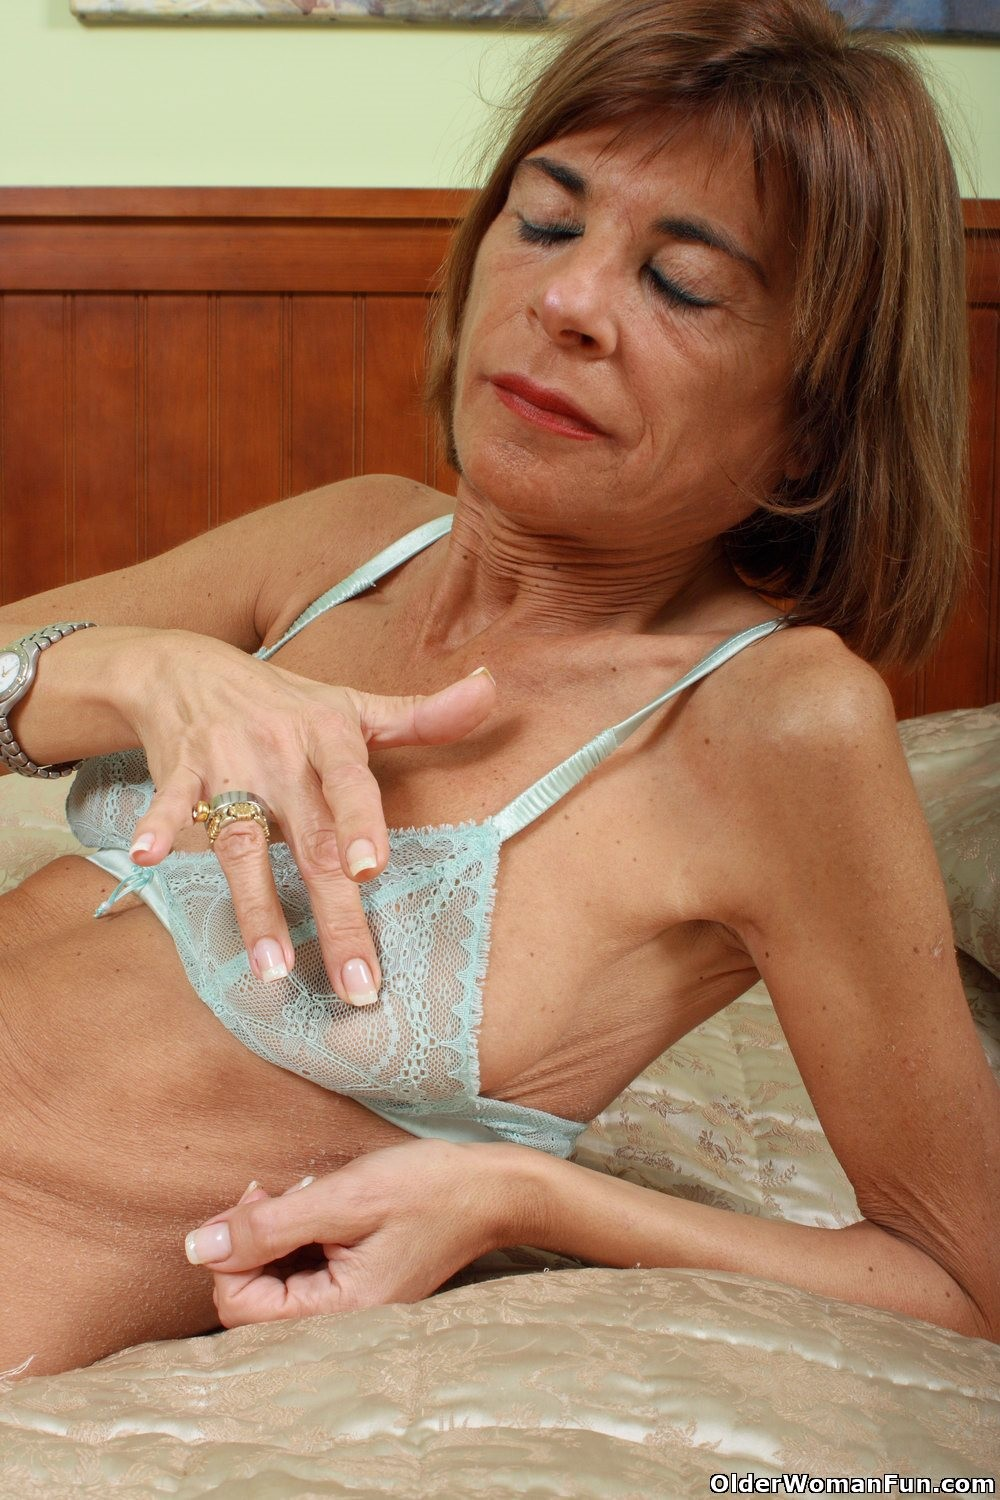 Big boobed curvy wife on real homemade 8